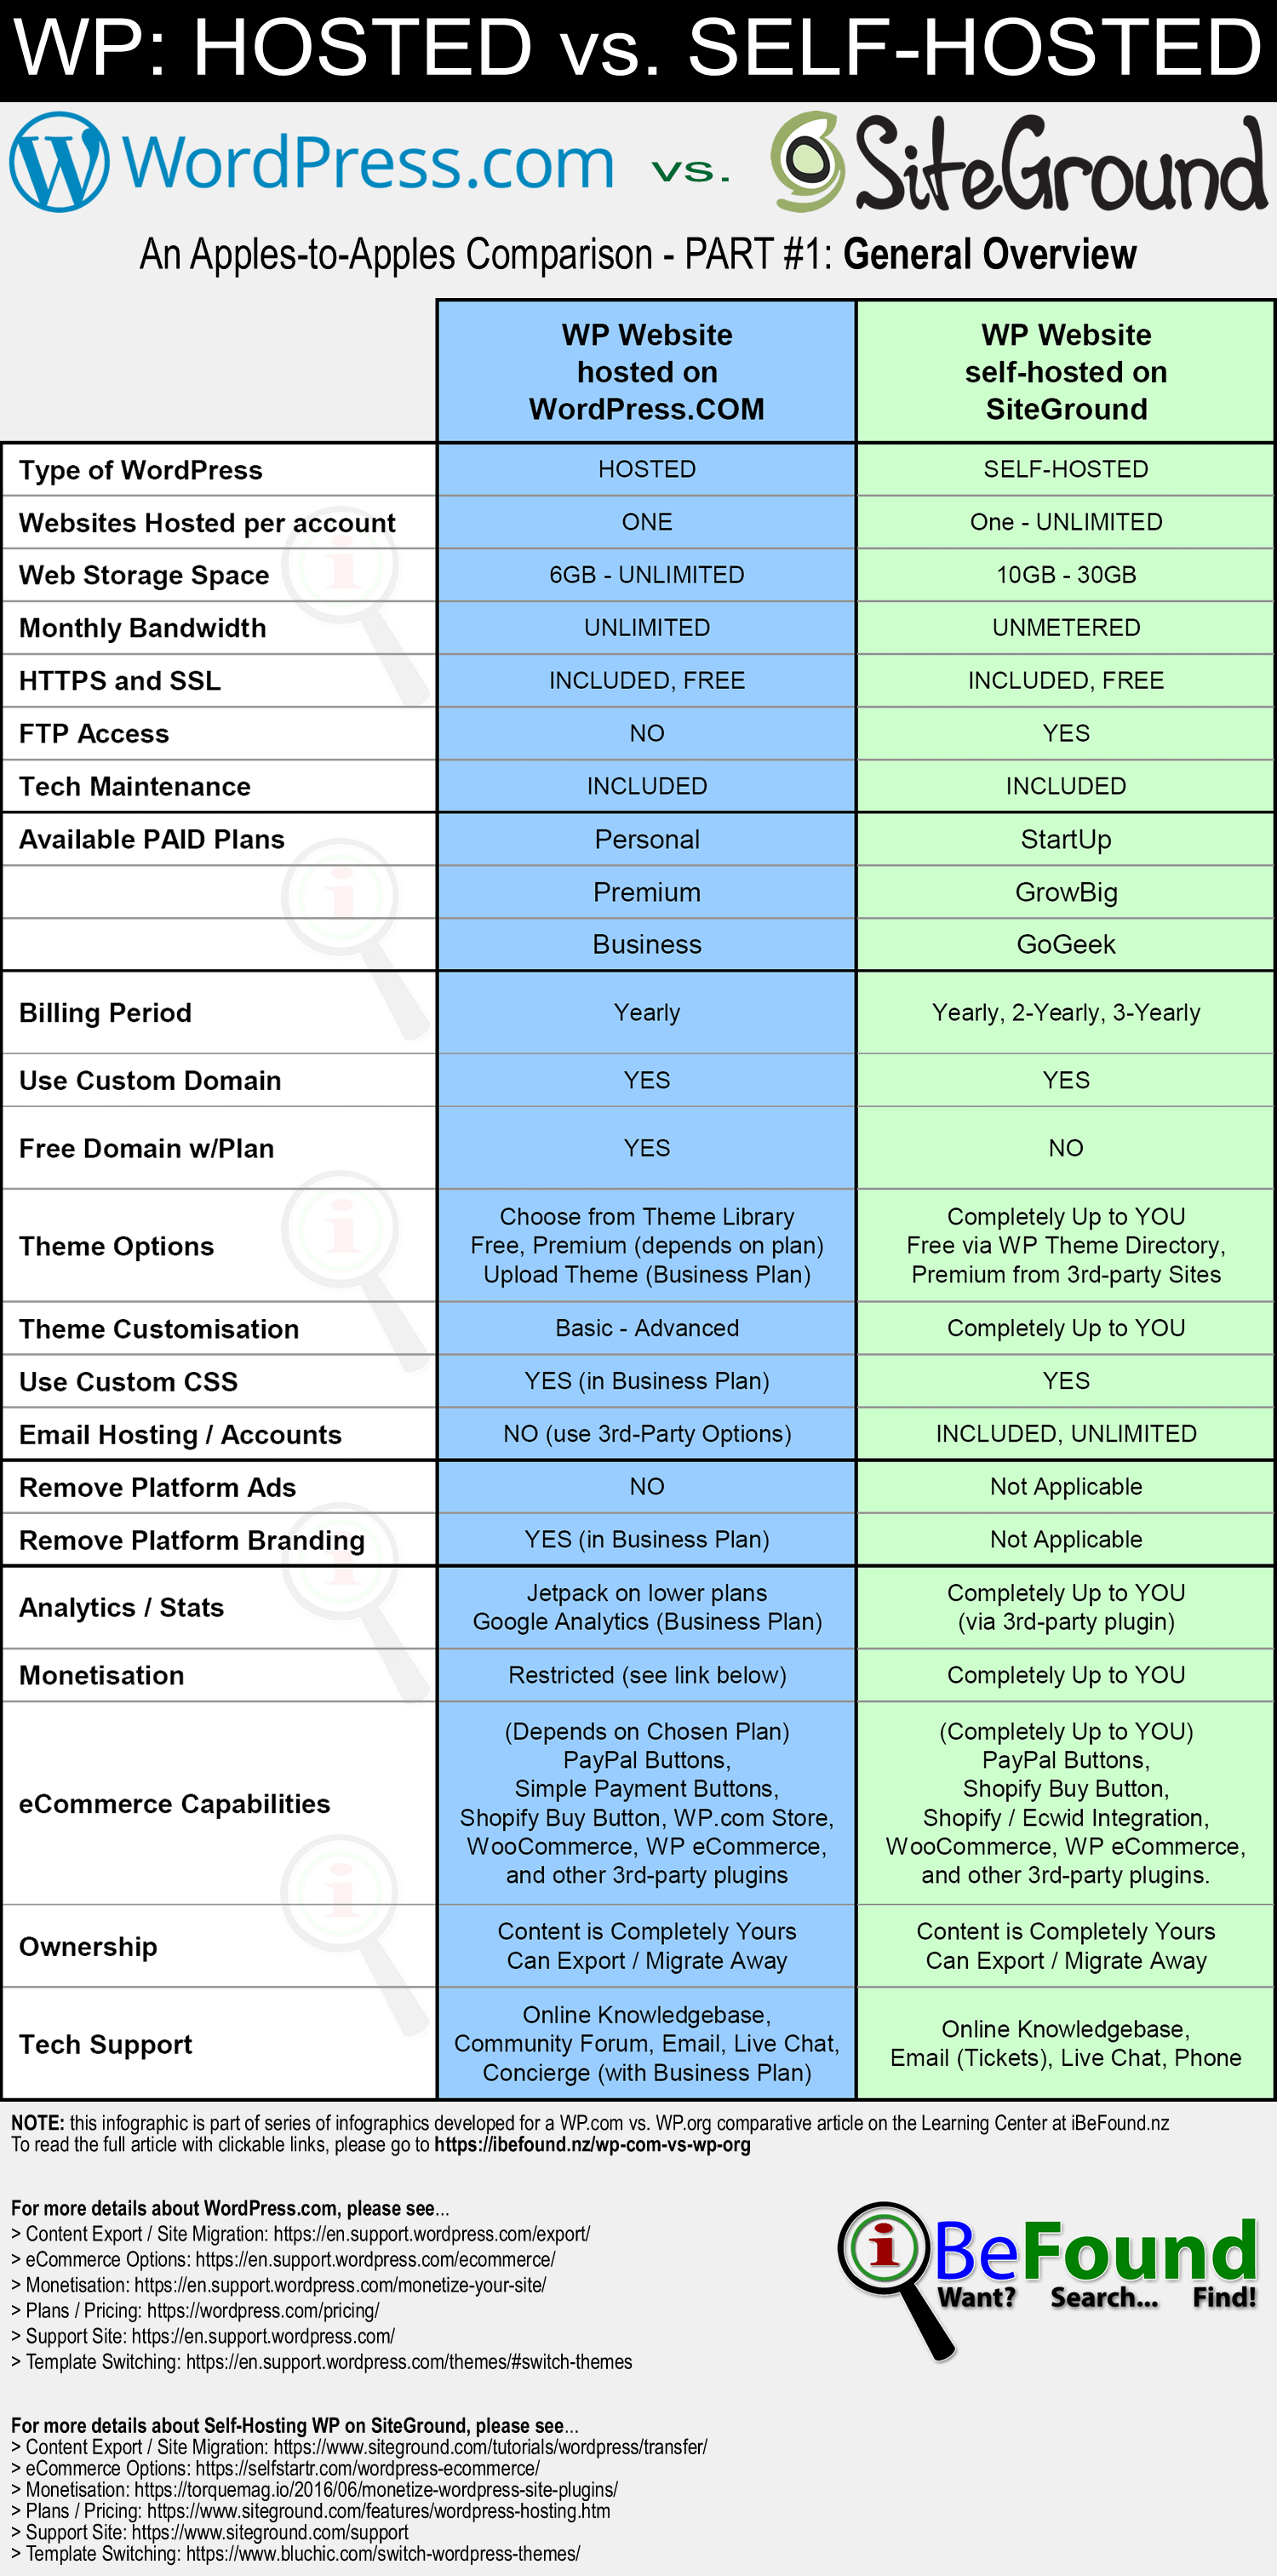 Hosted WordPress Versus Self Hosted WP On SiteGround 2018 Comparison Infographic Pt1 Overview